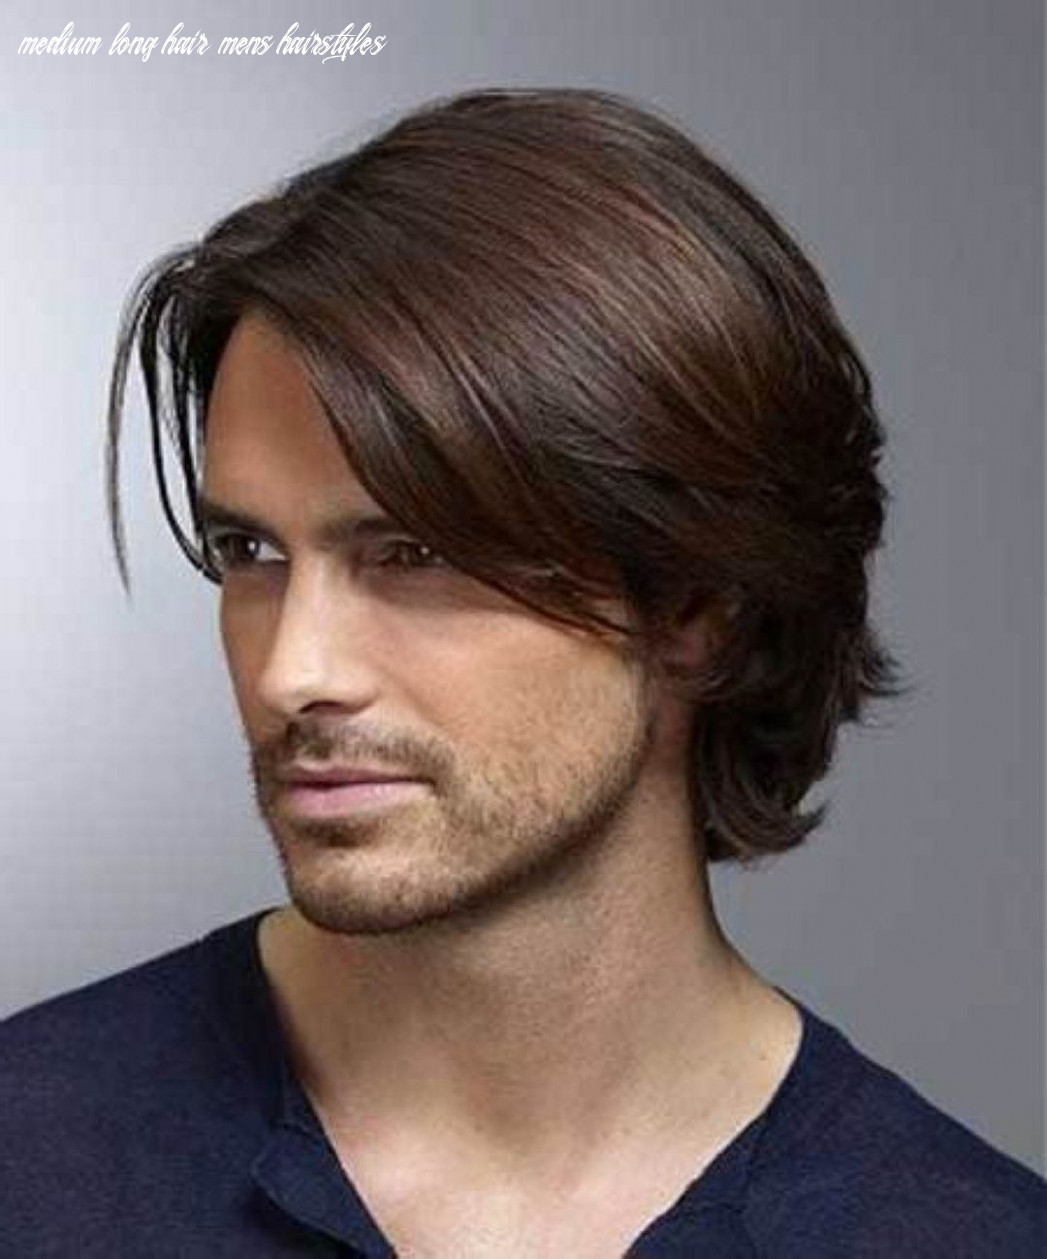 Hairstyle for medium length hair for men 11 images about men